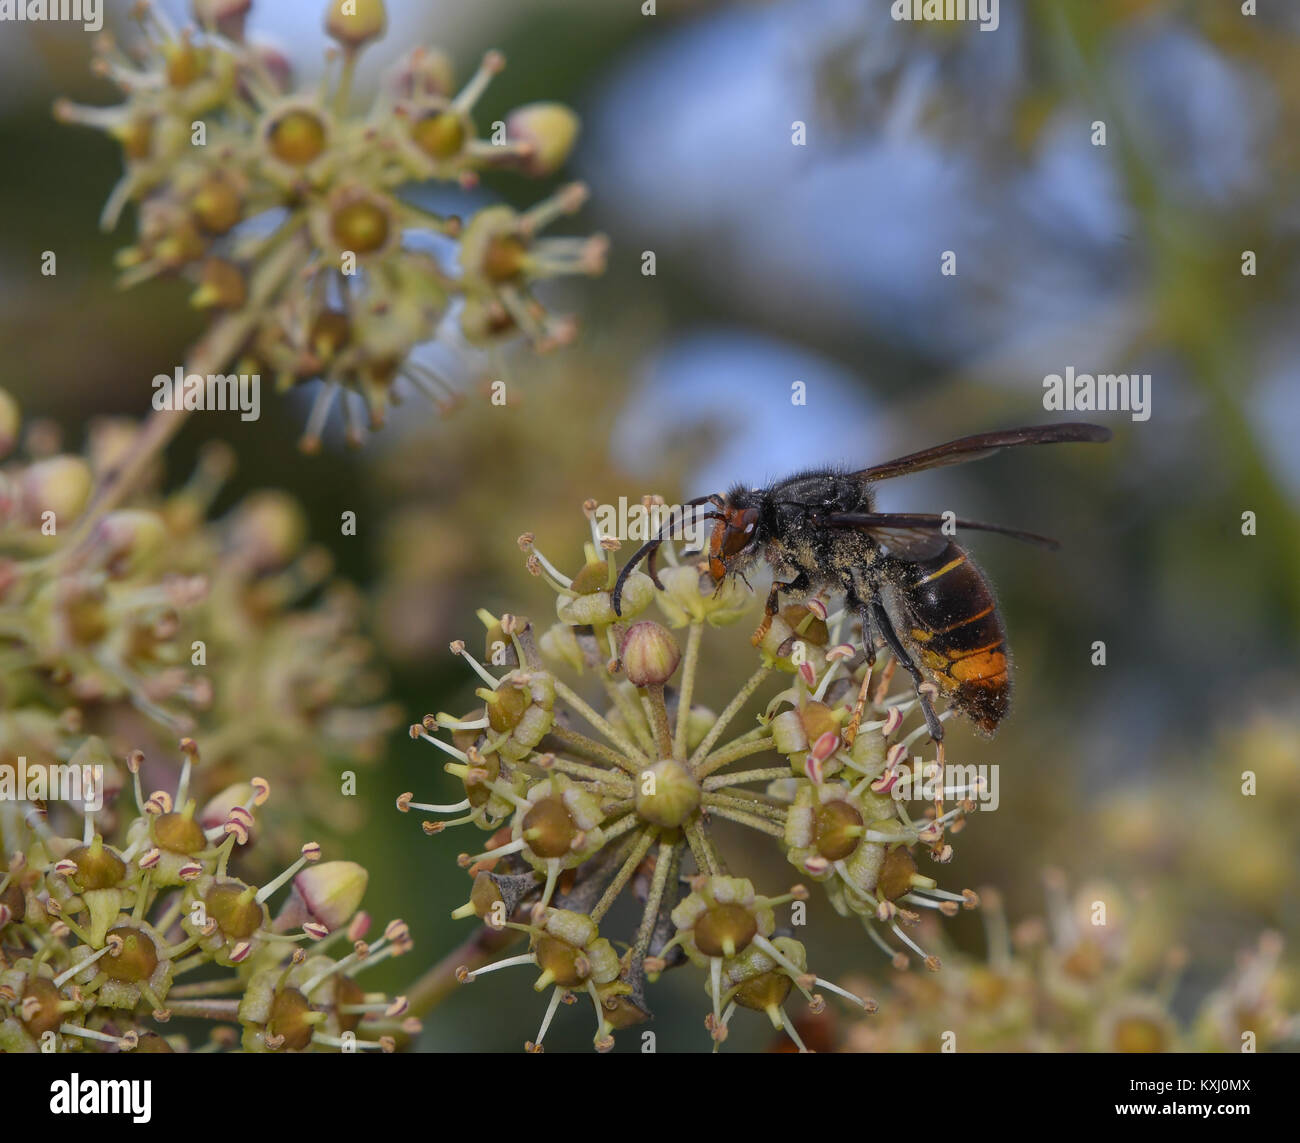 Asian wasp feeding on nectar from ivy flowers - Stock Image